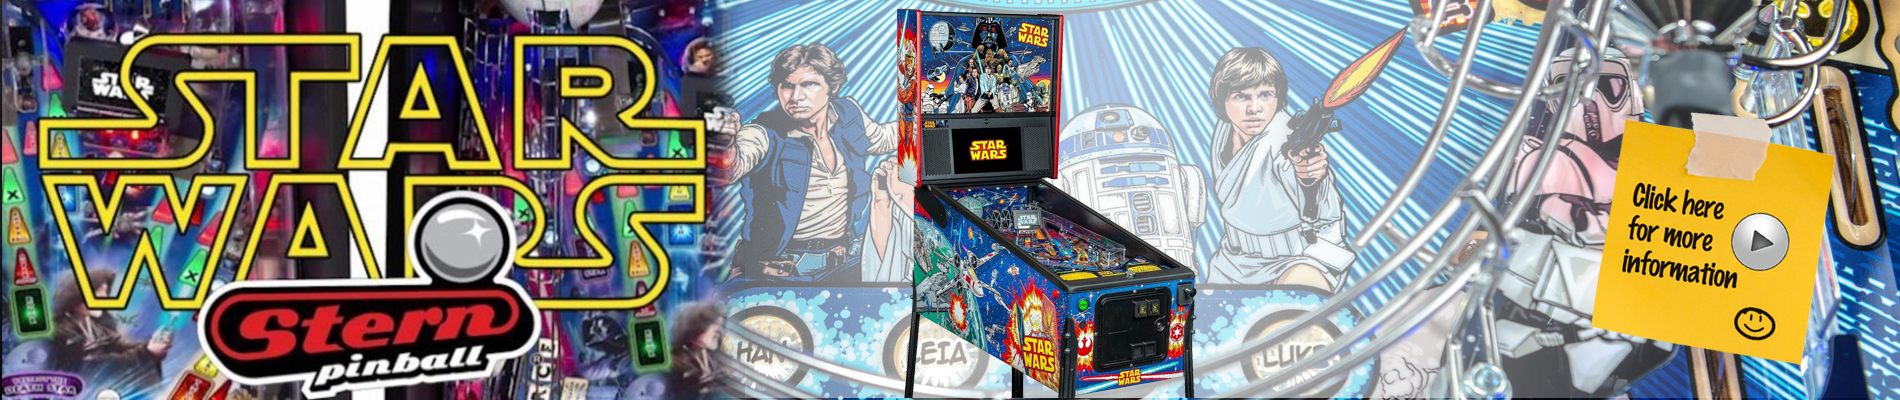 Star Wars Comic Pinball by Stern Pinball